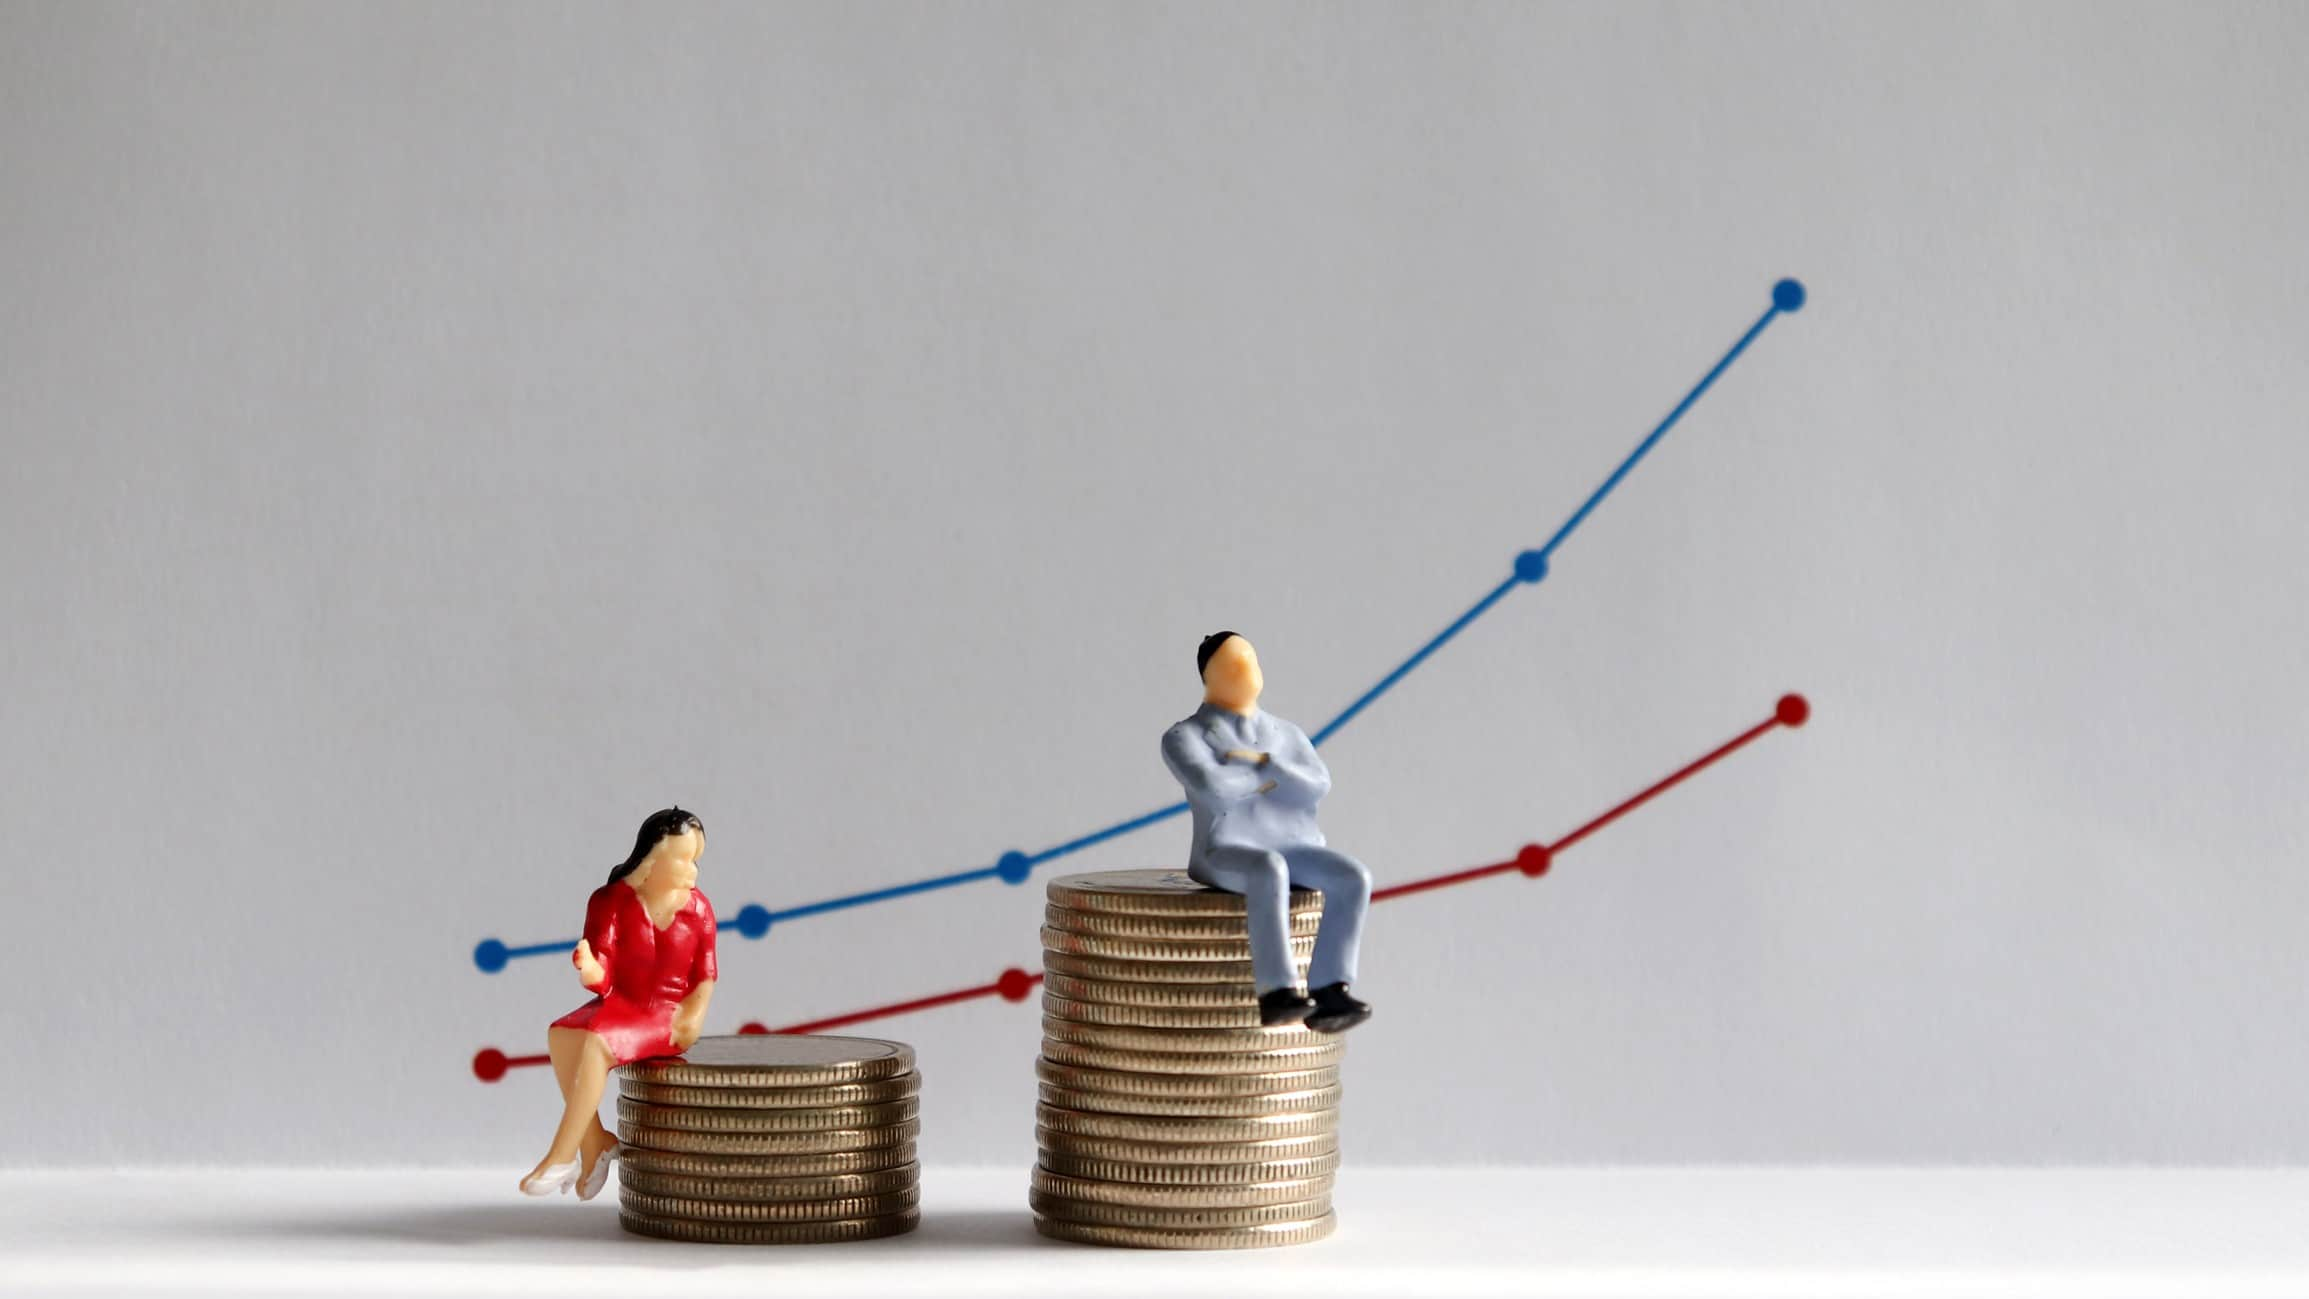 graph and image of man nd woman sitting on coins which illustrates gender gap